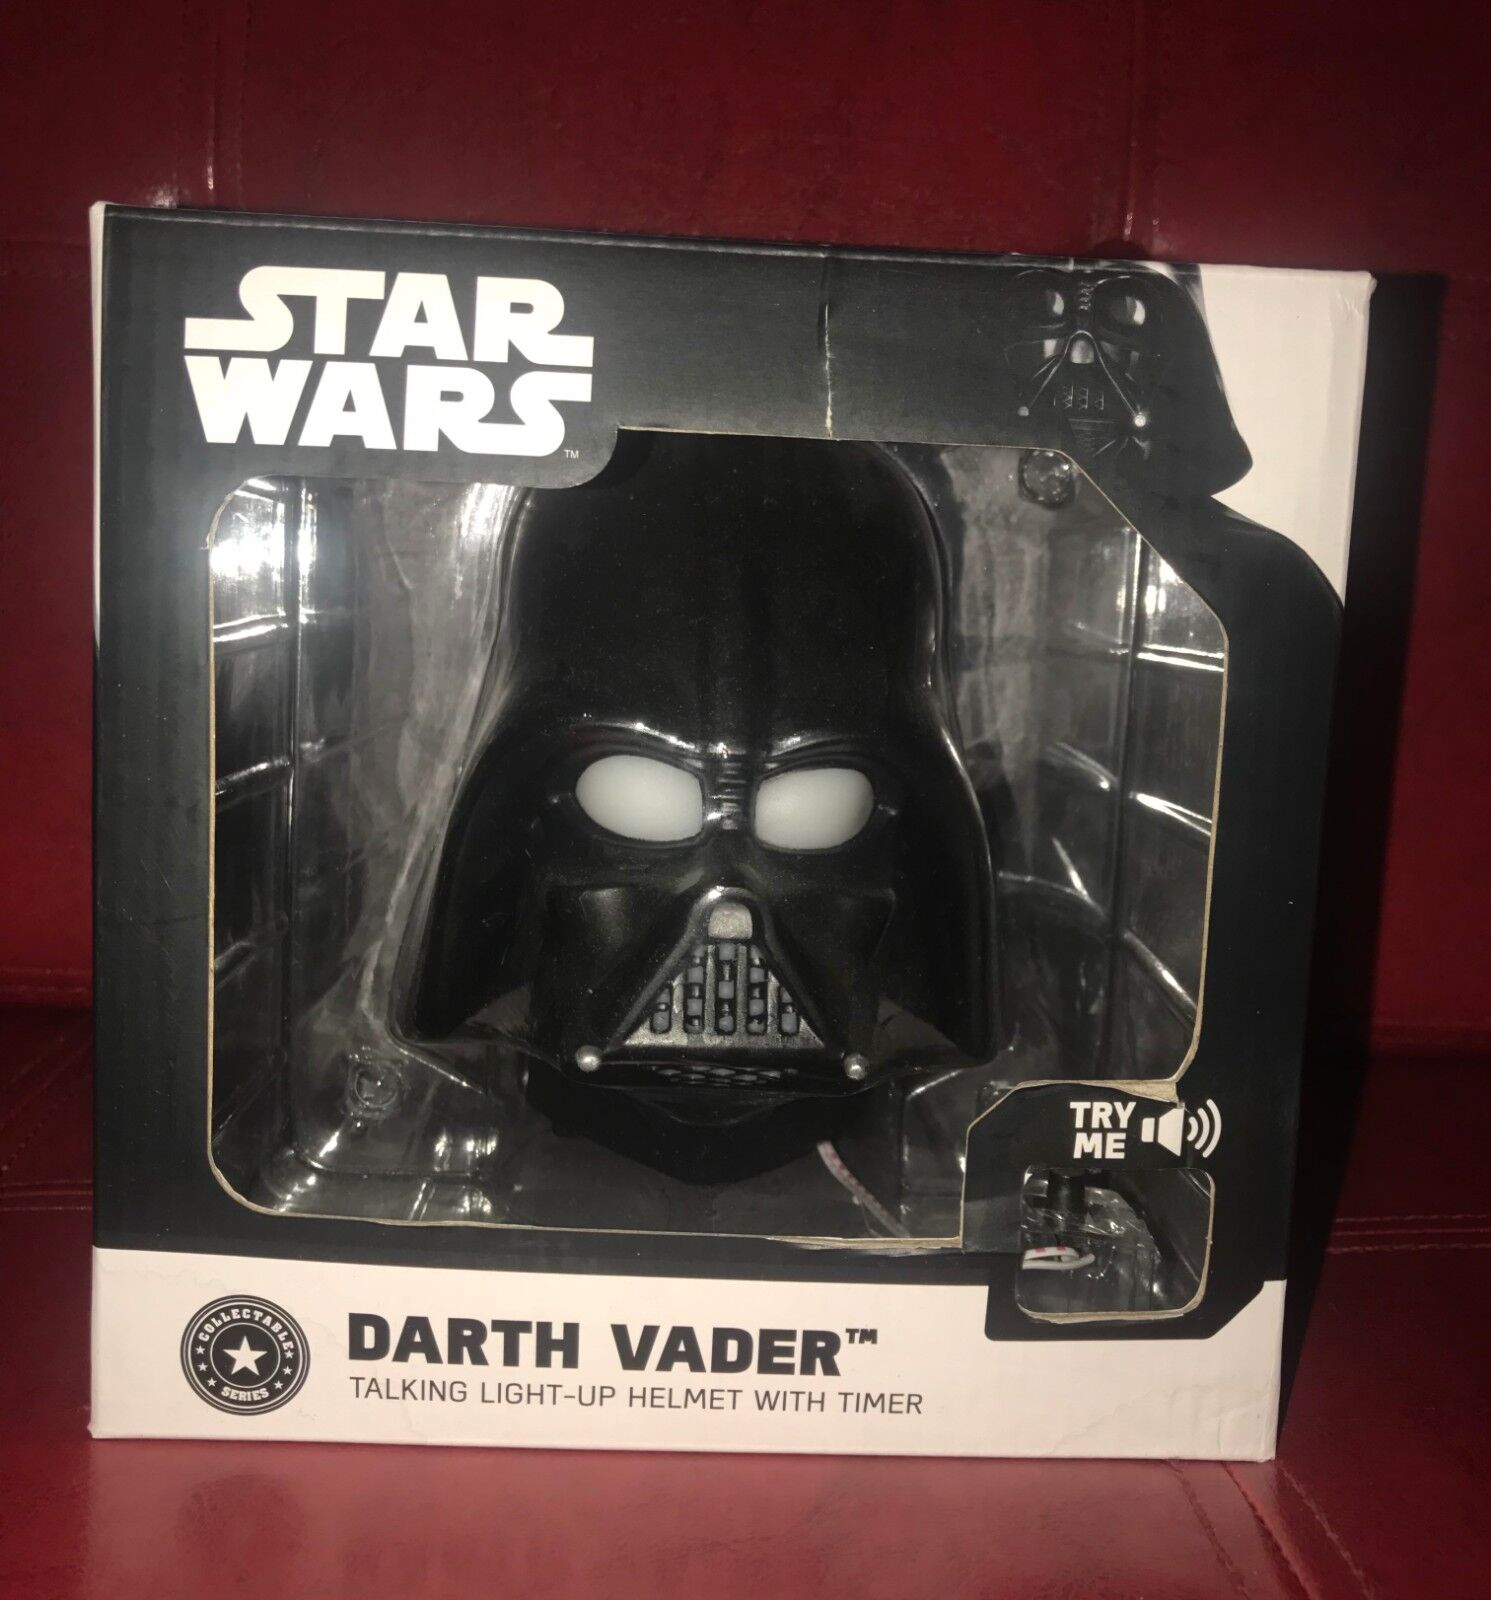 Star Wars Darth Vader Talking Light-up Helmet With Timer Collectible Series